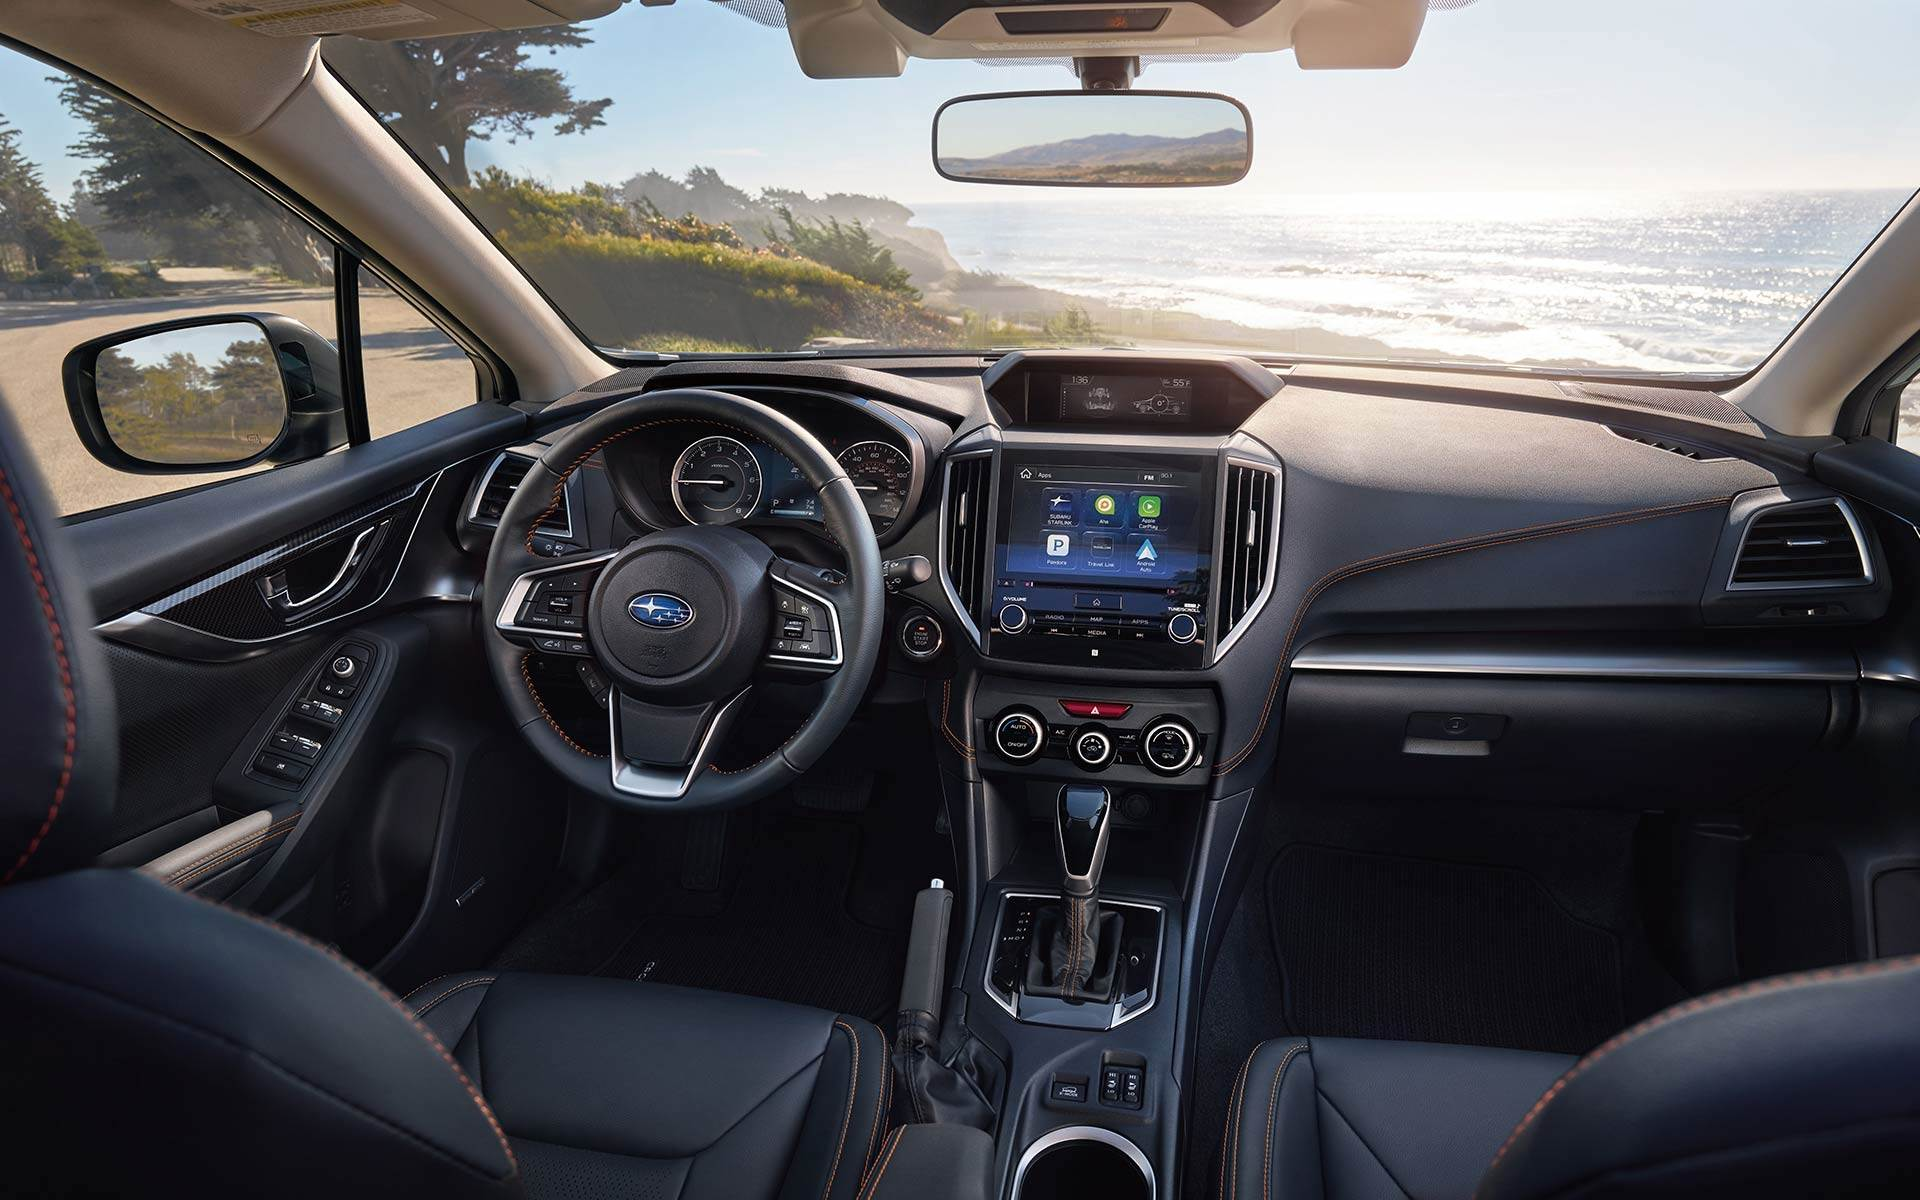 Black Leather Interior of the Subaru Crosstrek